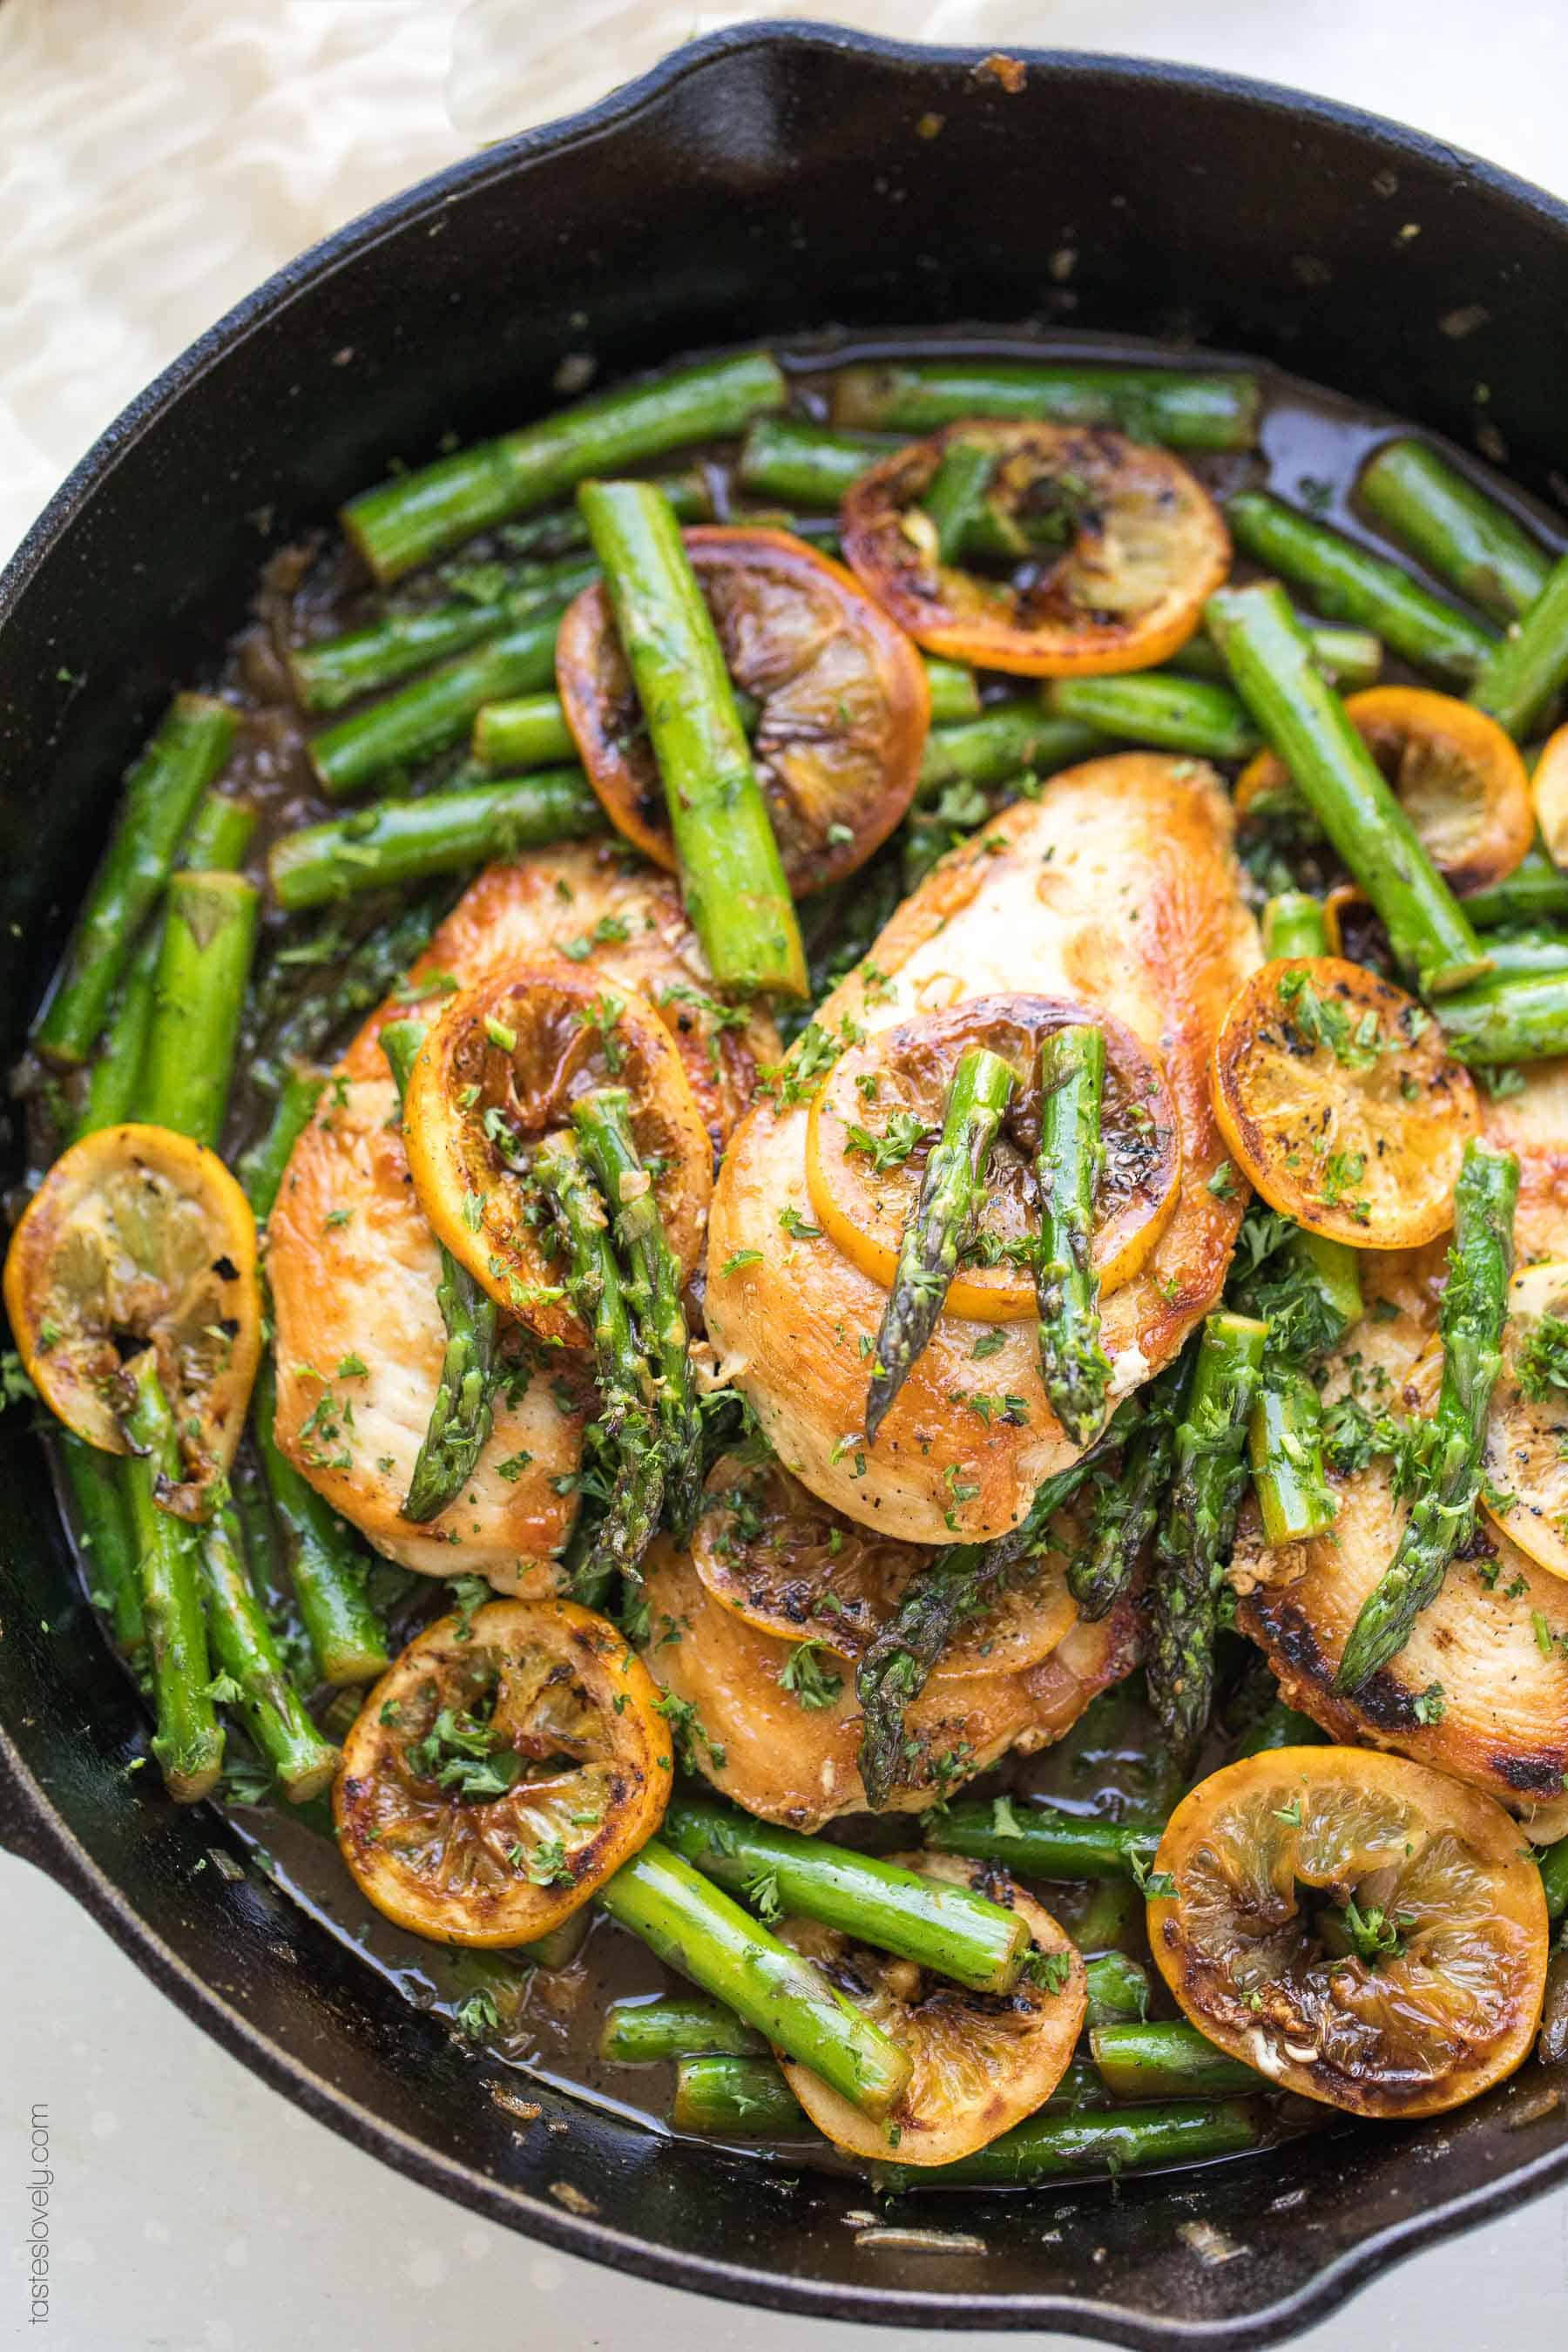 Paleo Lemon Honey Chicken & Asparagus Skillet Dinner Recipe (gluten free, grain free, dairy free, refined sugar free, clean eating)